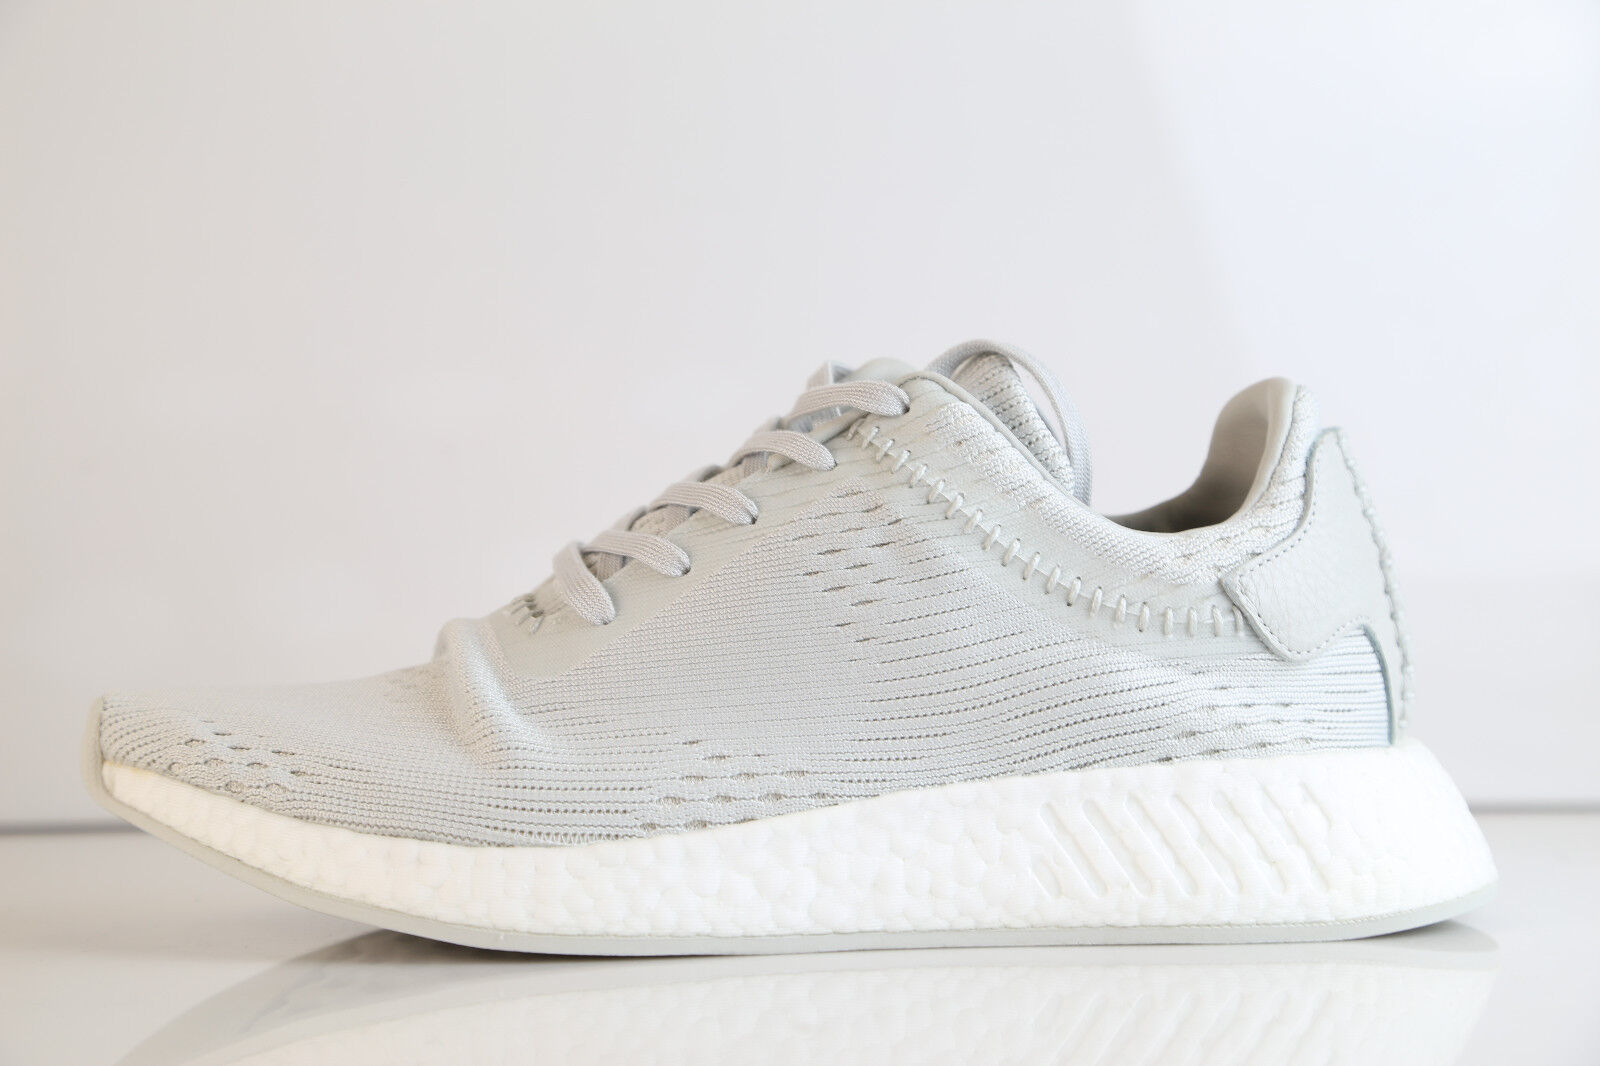 Adidas X Wings + Horns NMD R2 PK Hint knit Tan BB3118 5-13.5 prime knit Hint rf wang egg c17847